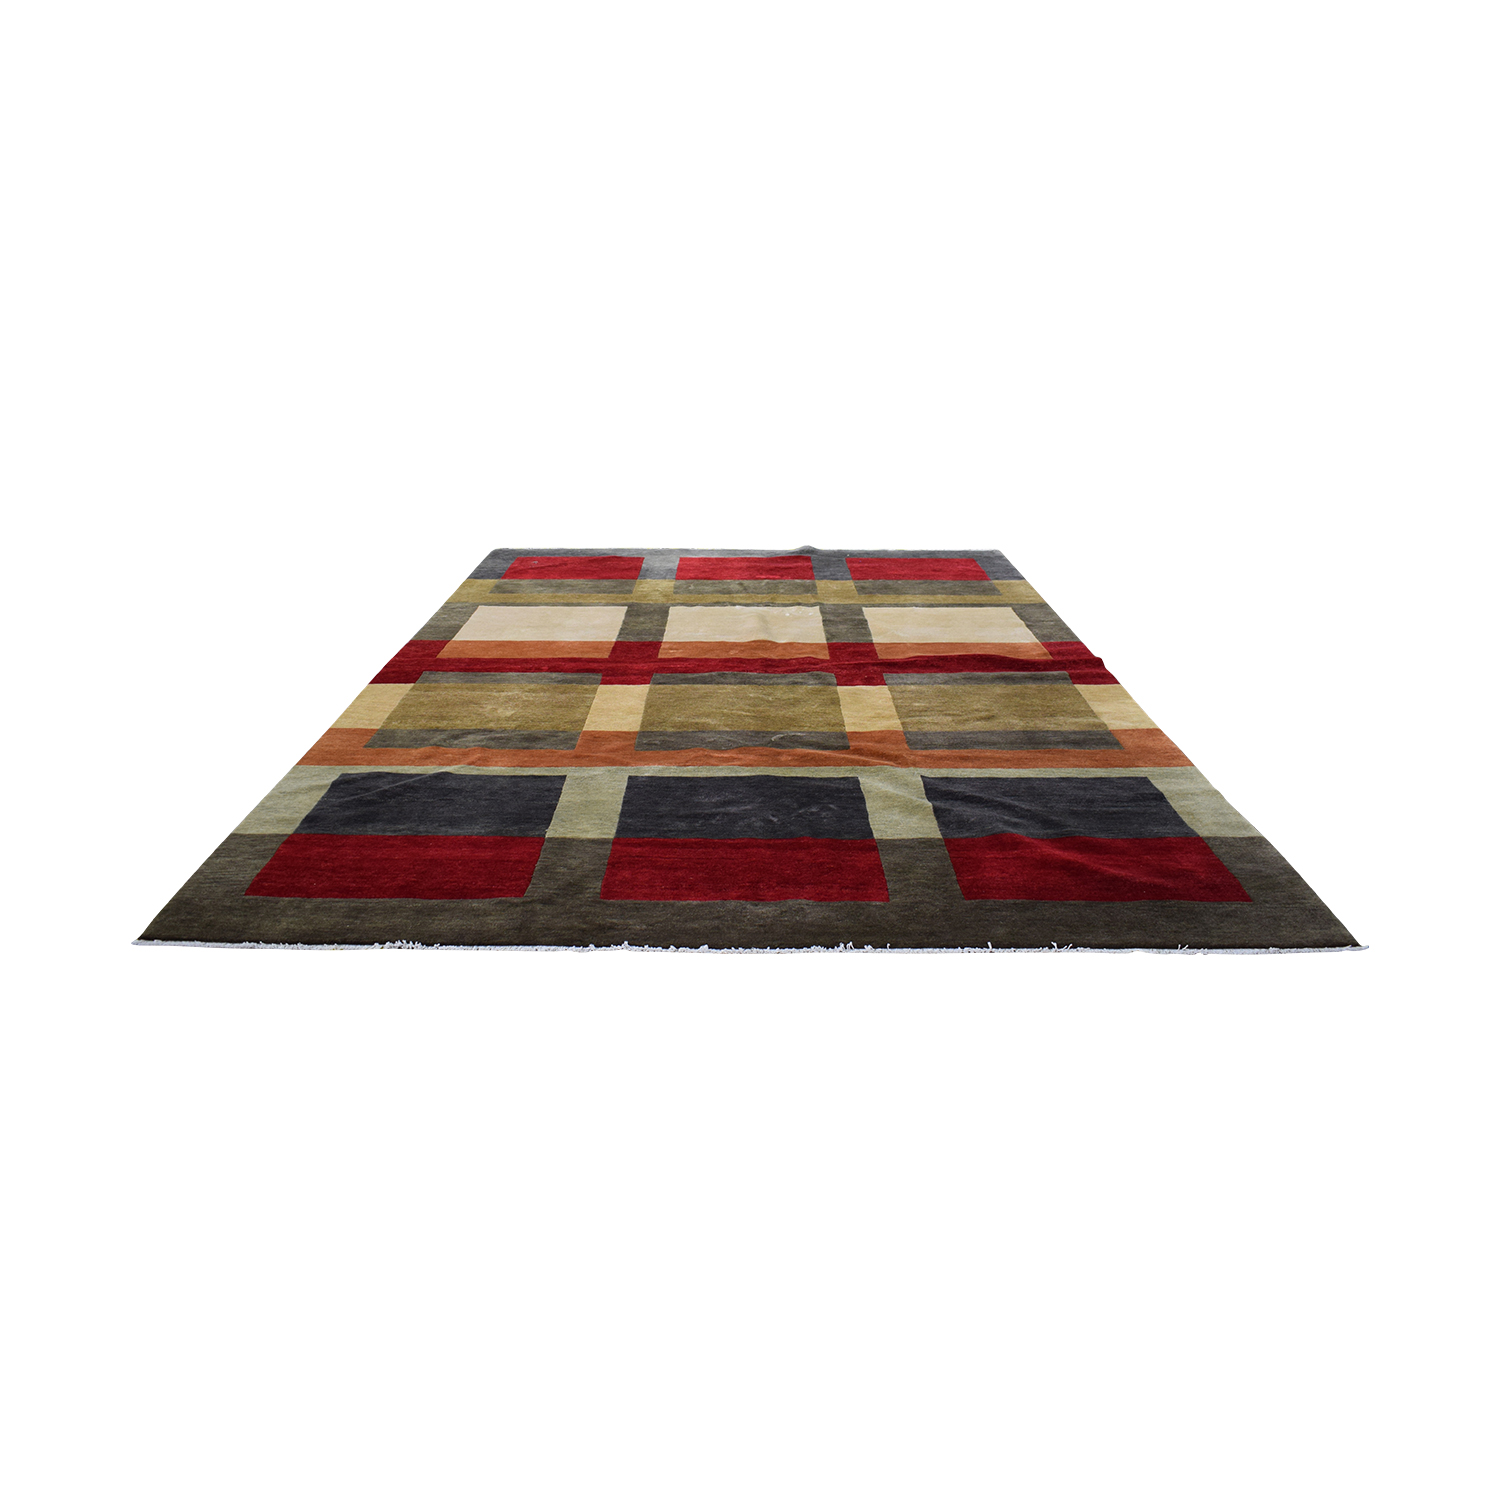 Ethan Allen Intersect Area Rug sale